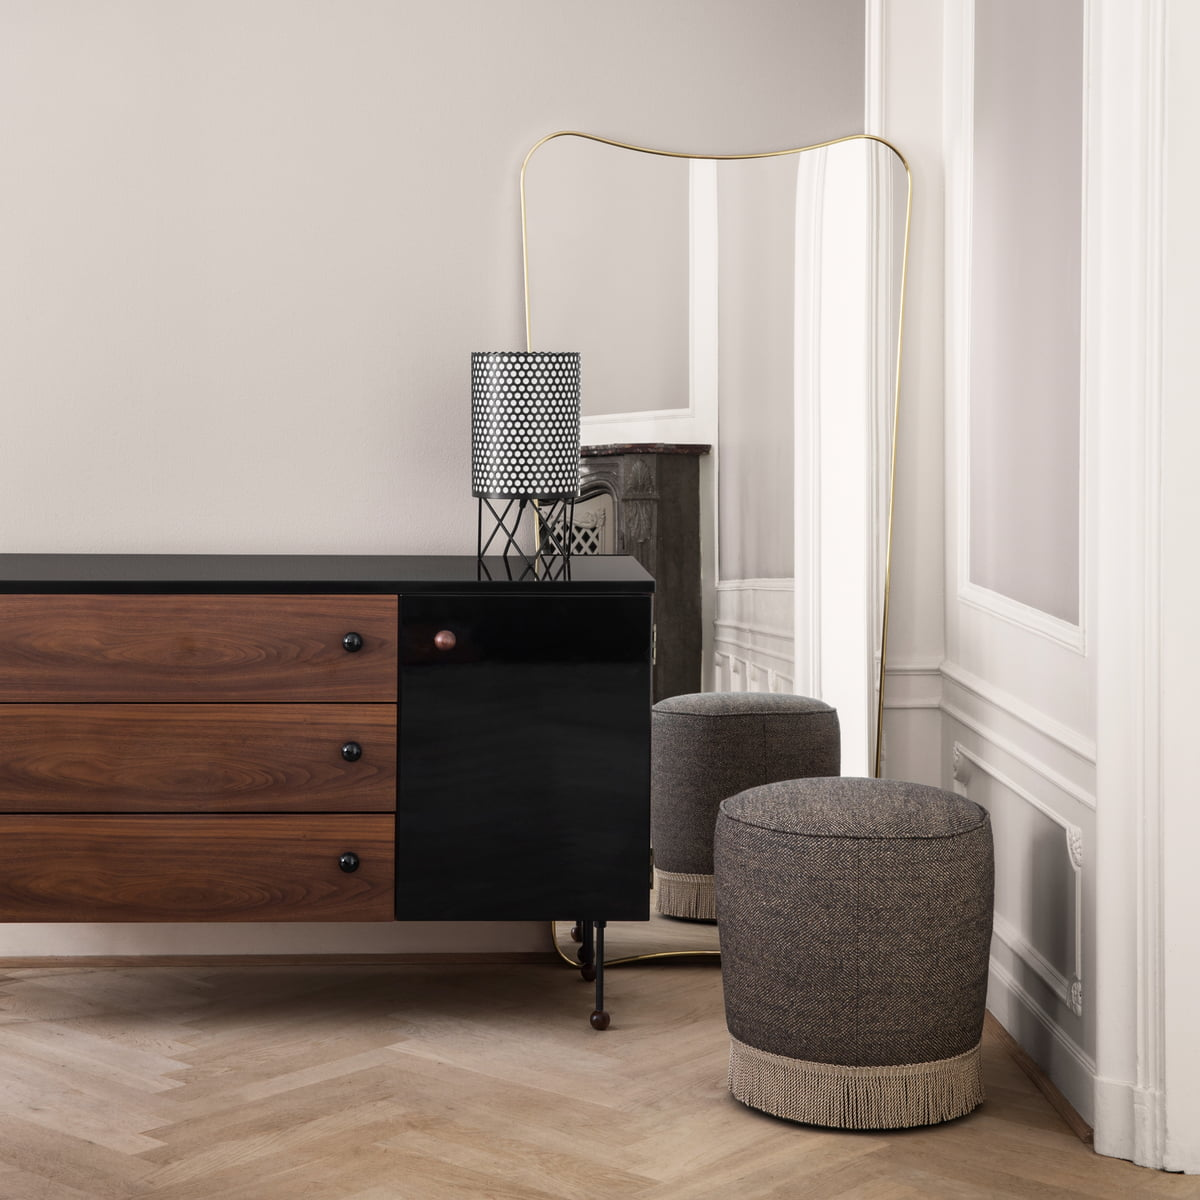 f a 33 wandspiegel von gubi online kaufen. Black Bedroom Furniture Sets. Home Design Ideas